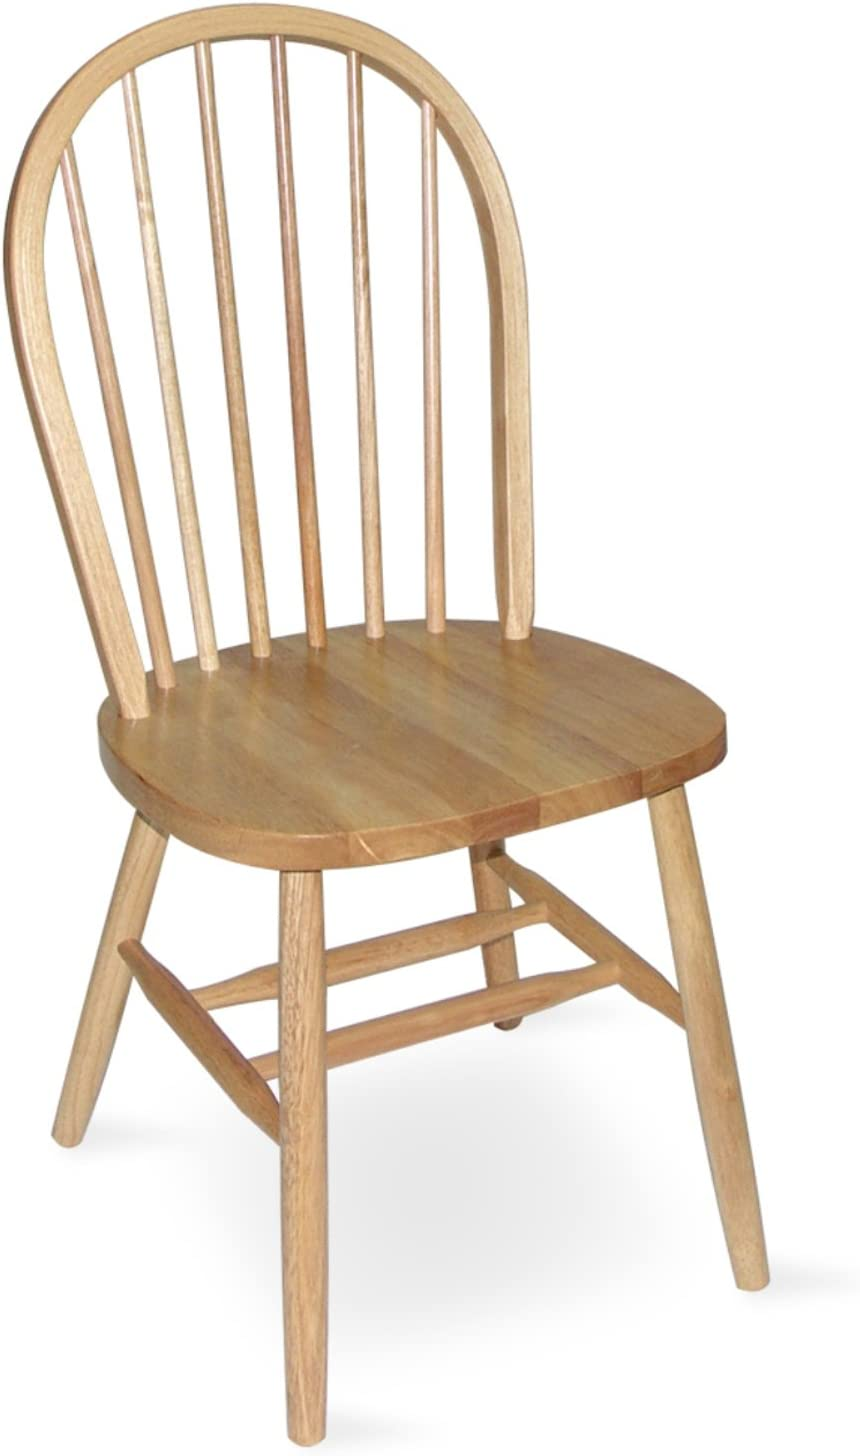 International Concepts 37-Inch High Spindle Back Chair, Natural